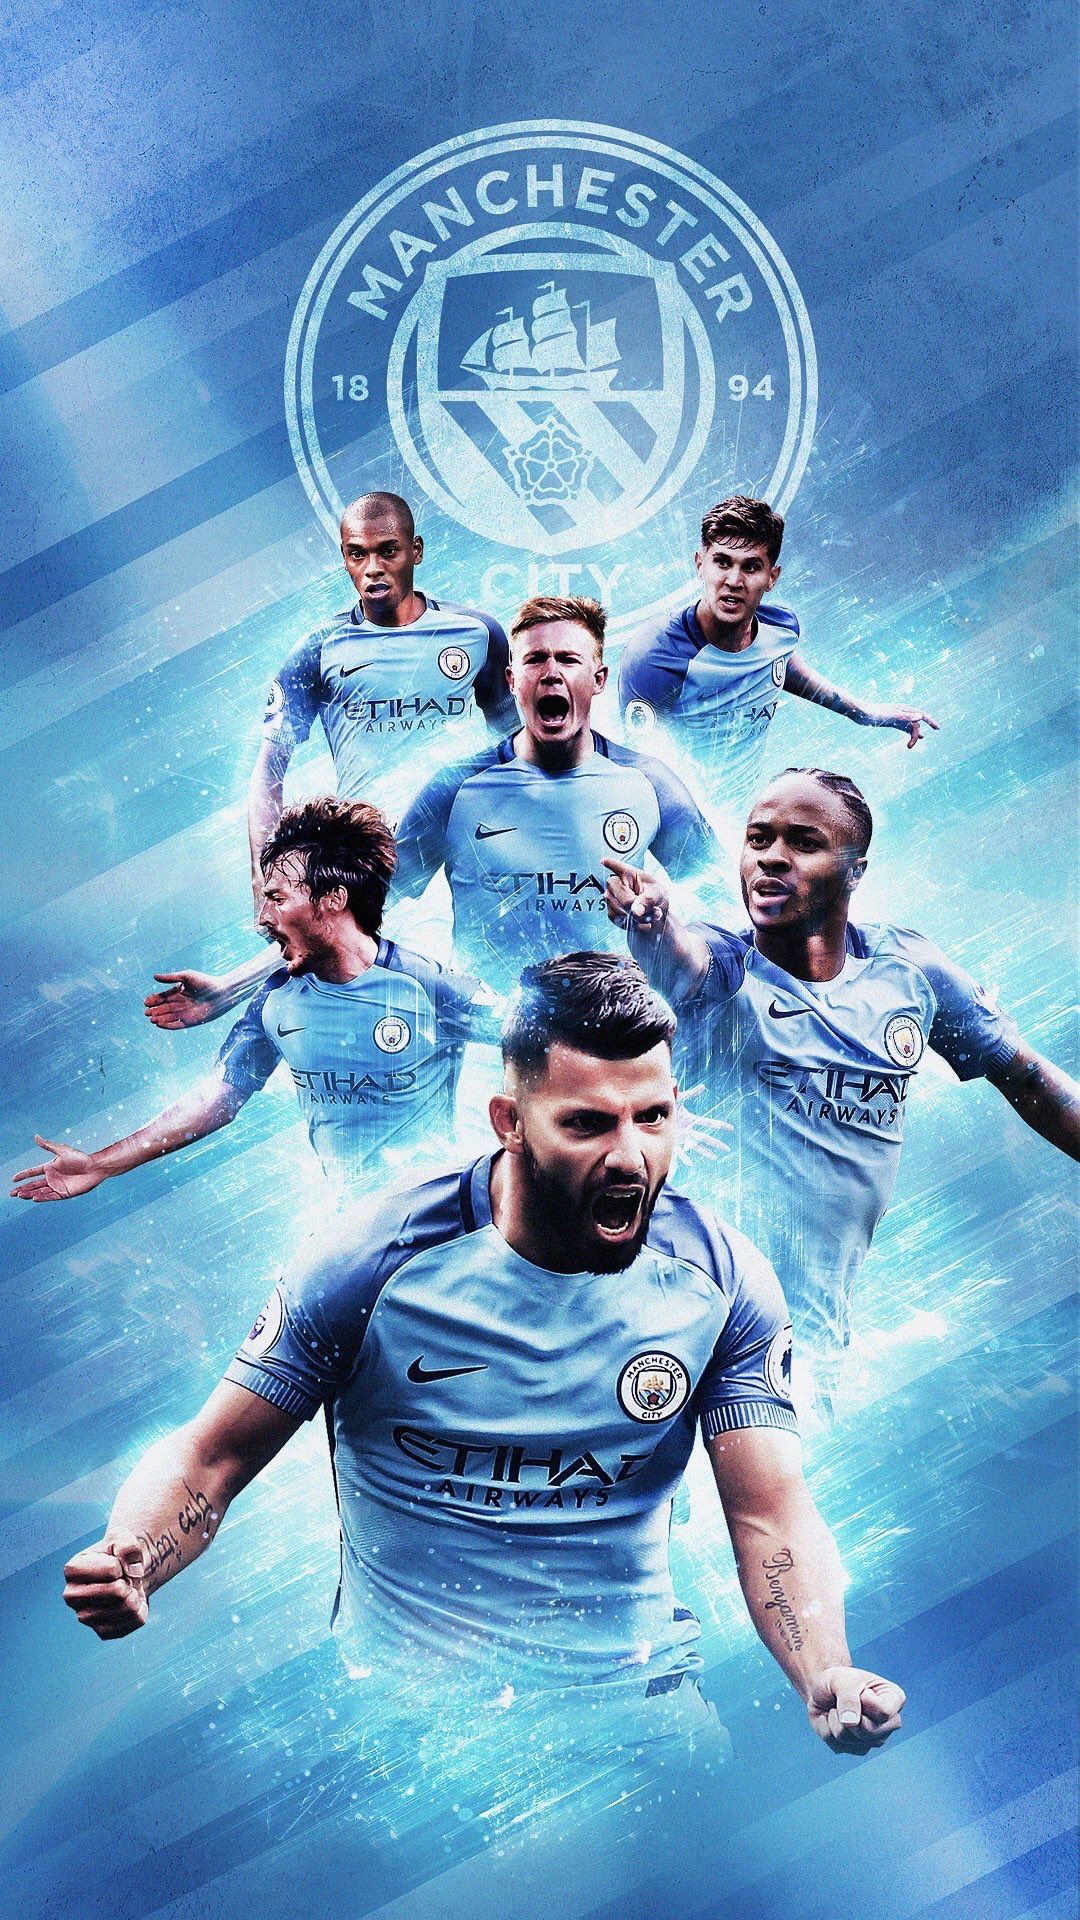 Come on city. | Manchester city wallpaper, Manchester city ...